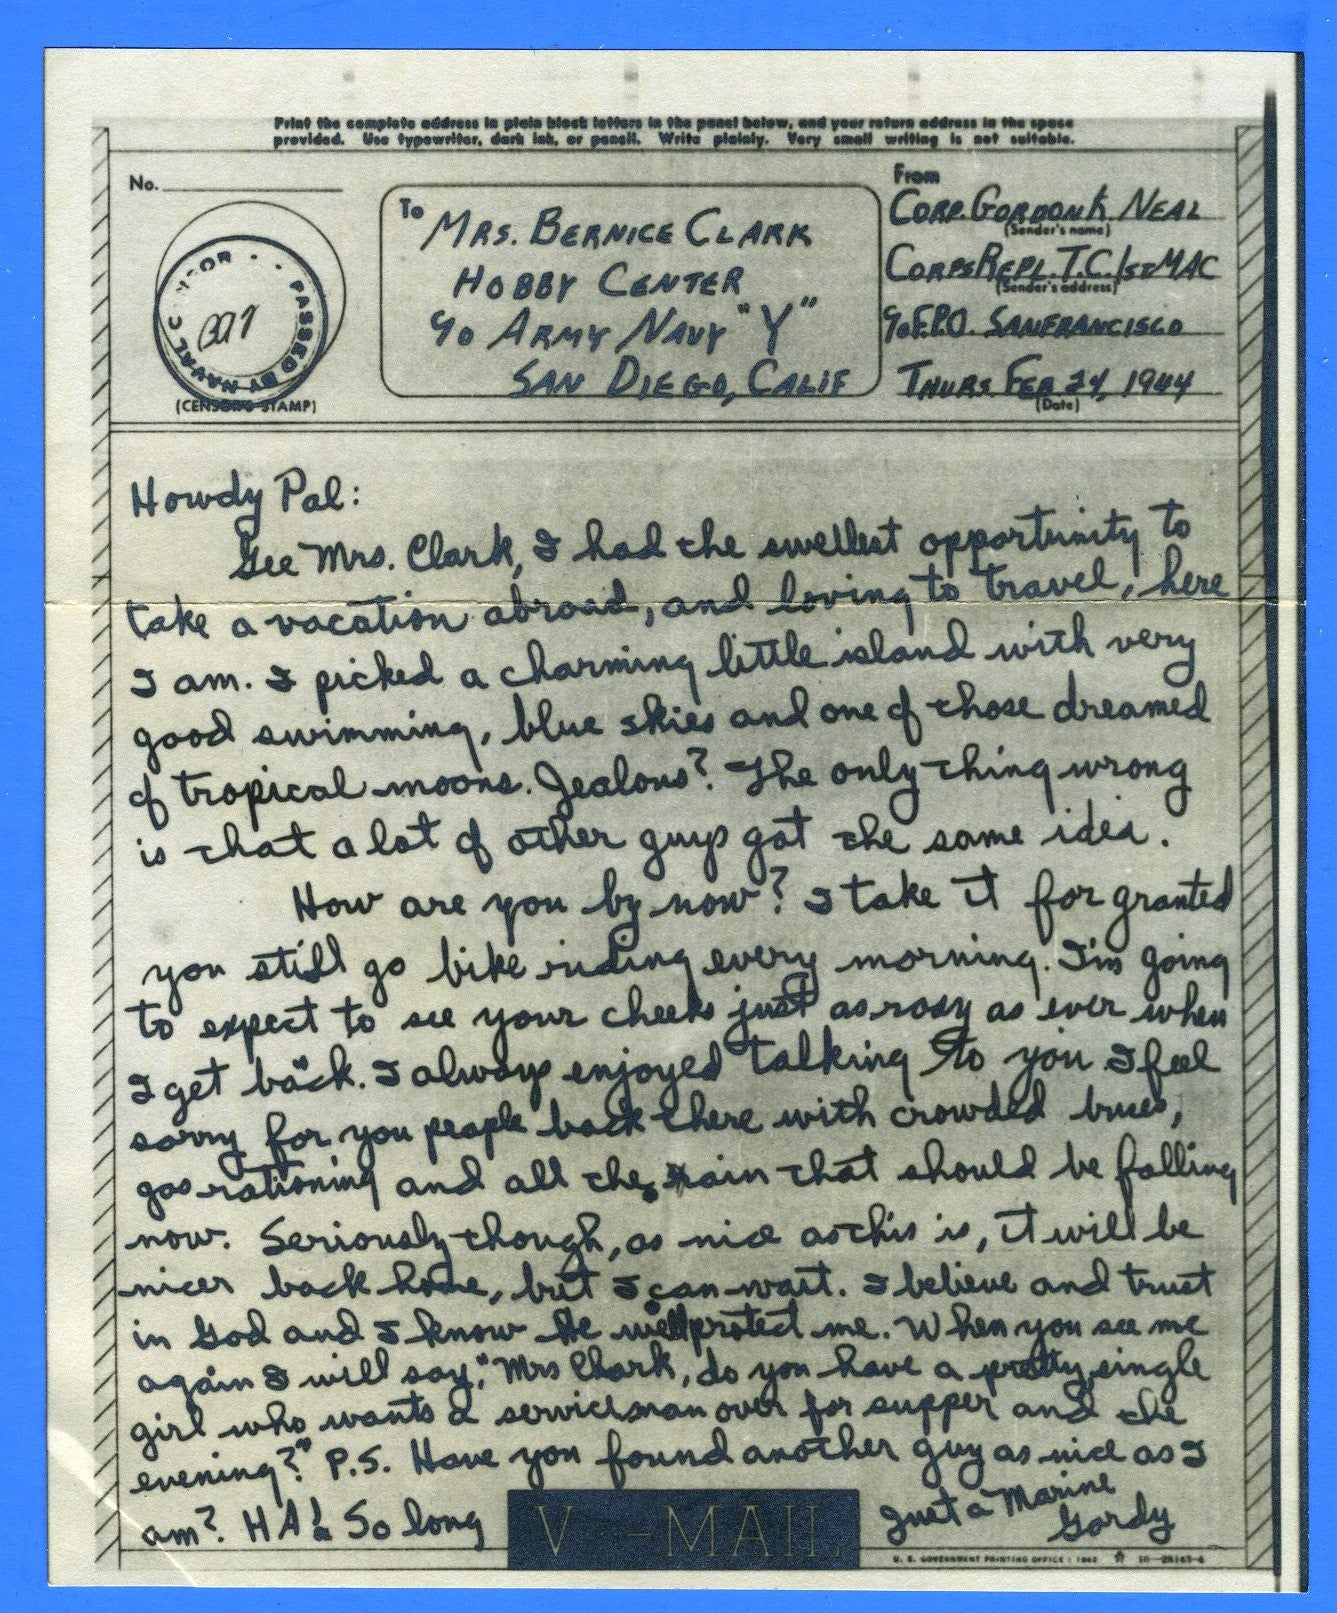 Marine's Censored V Mail Corps Replacement Transient Center Noumea, New Guinea February 24, 1944